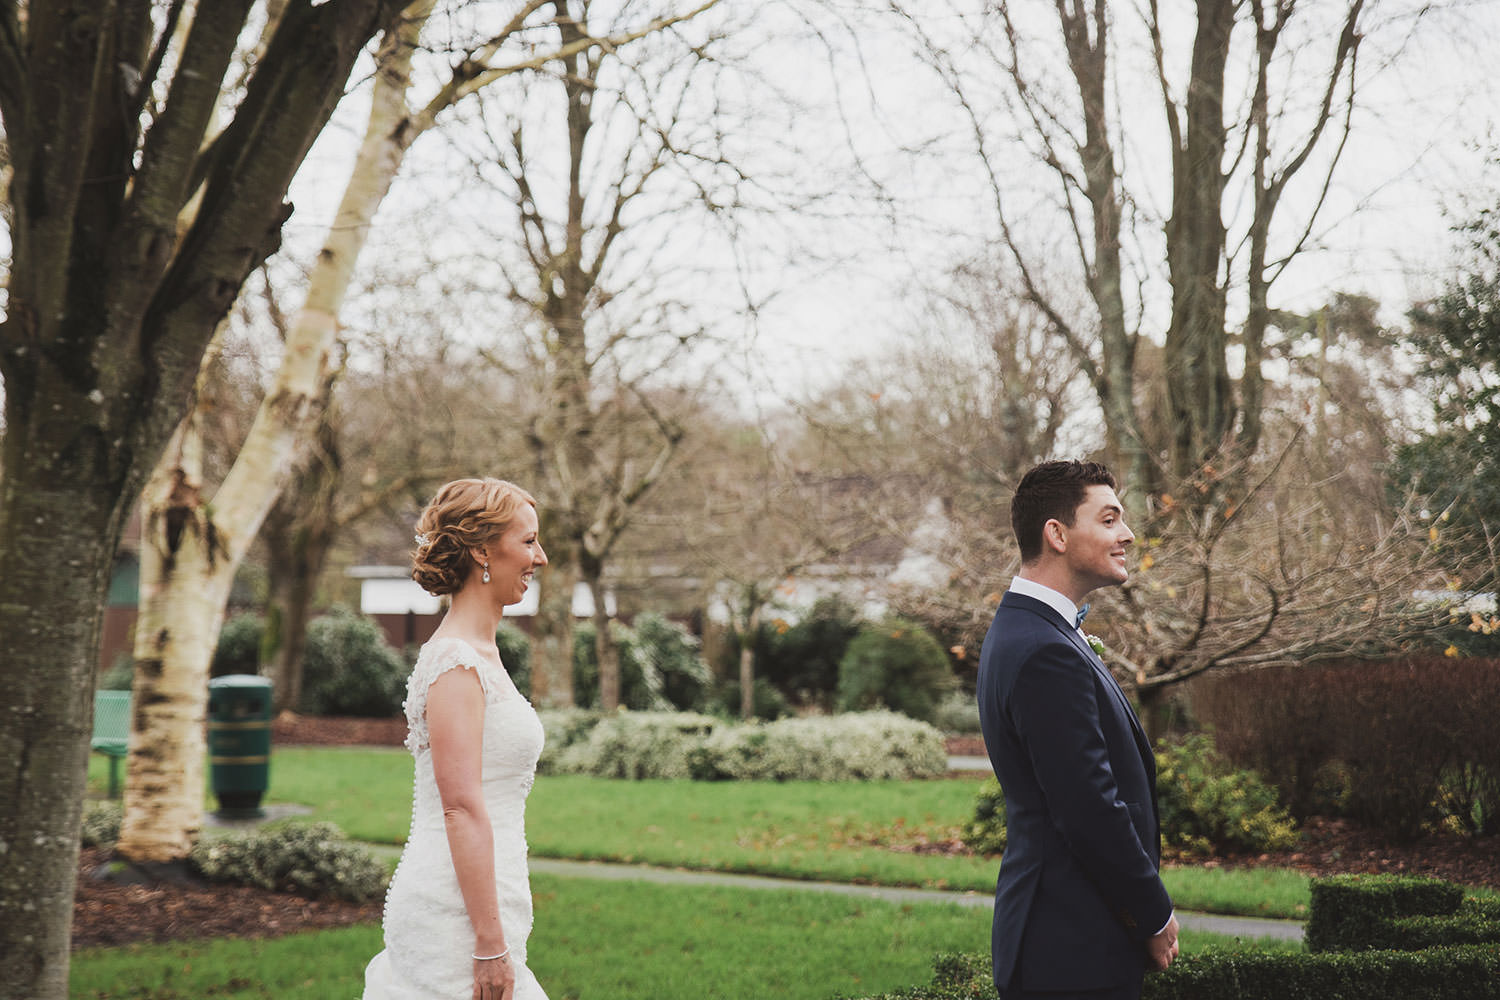 dunraven-arms-hotel-wedding-photography-056.jpg